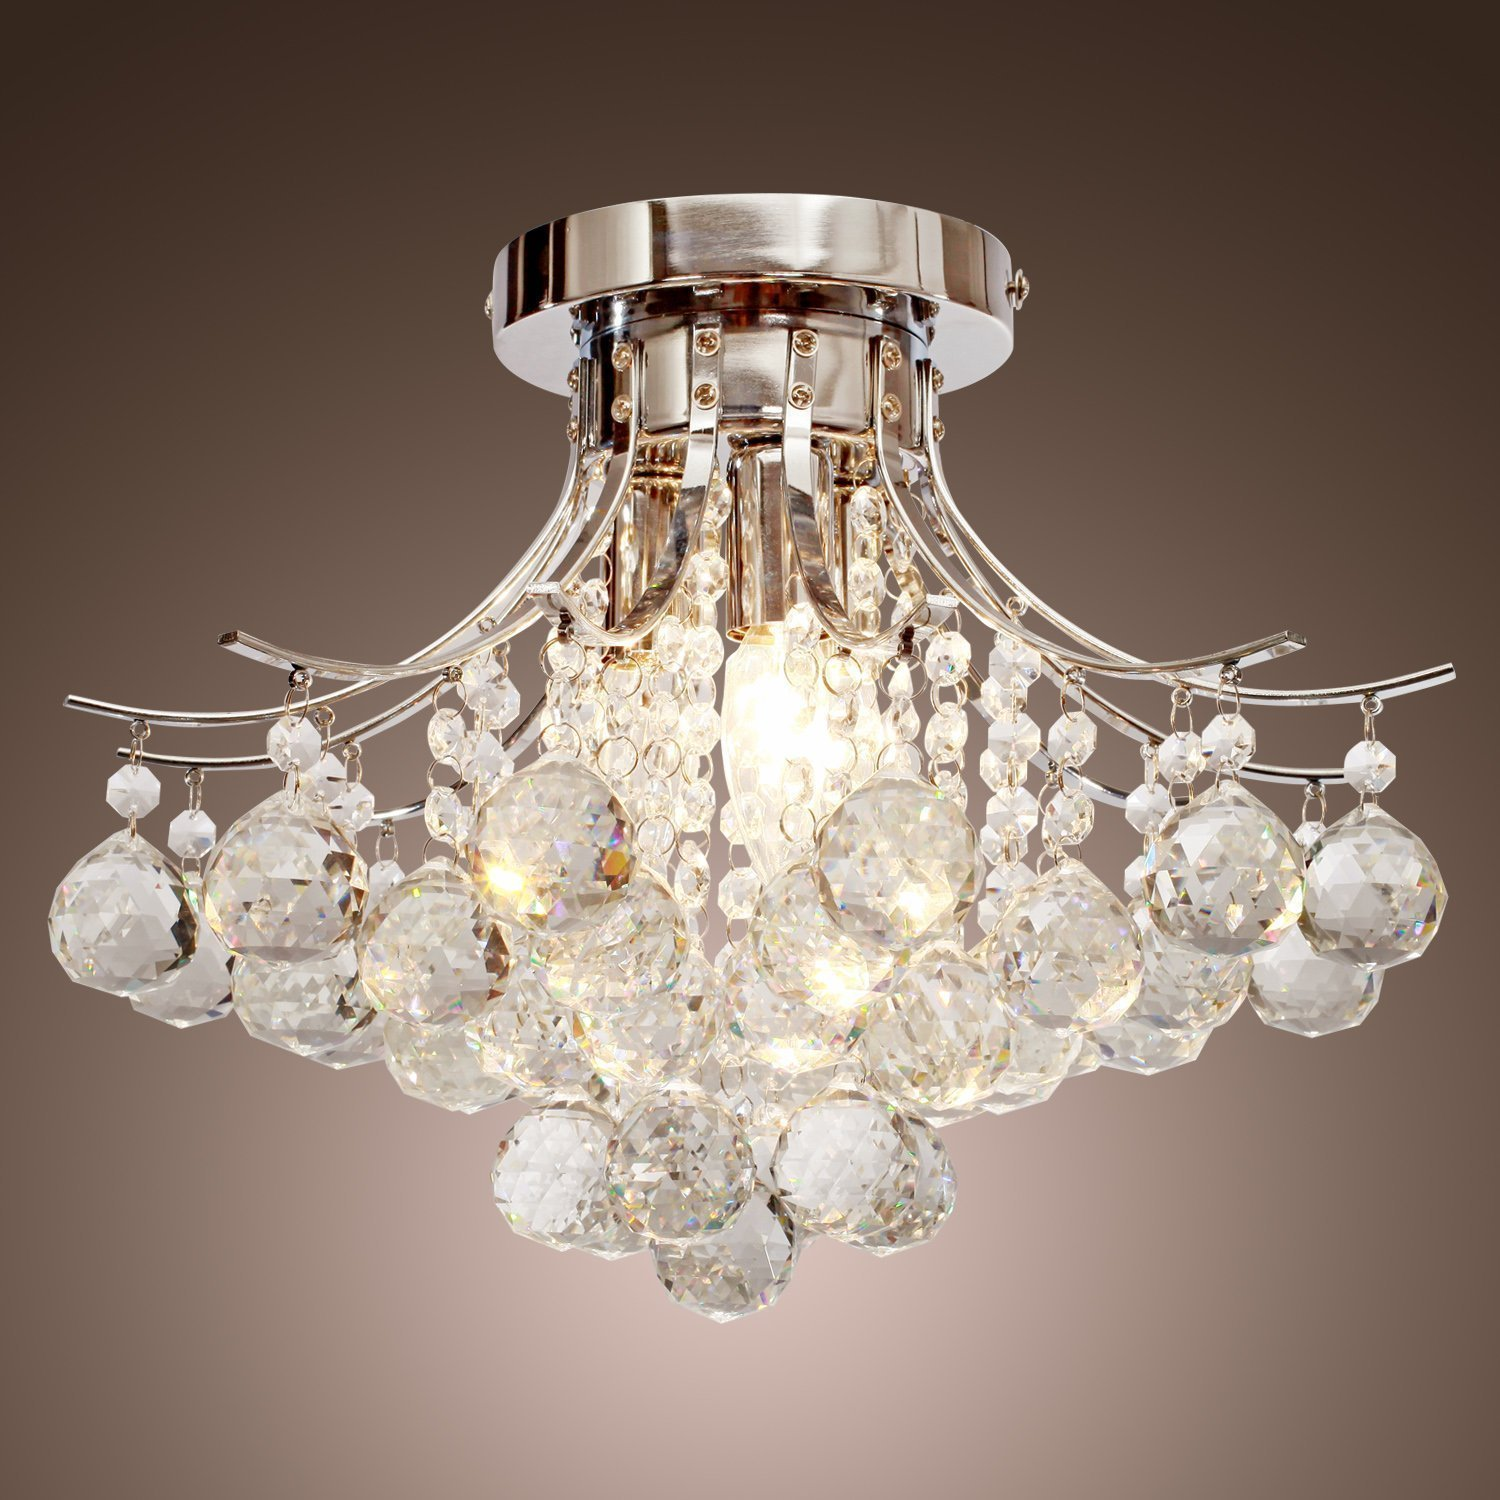 Nice LOCO Chrome Finish Crystal Chandelier with lights Mini Style Flush Mount Ceiling Light Fixture